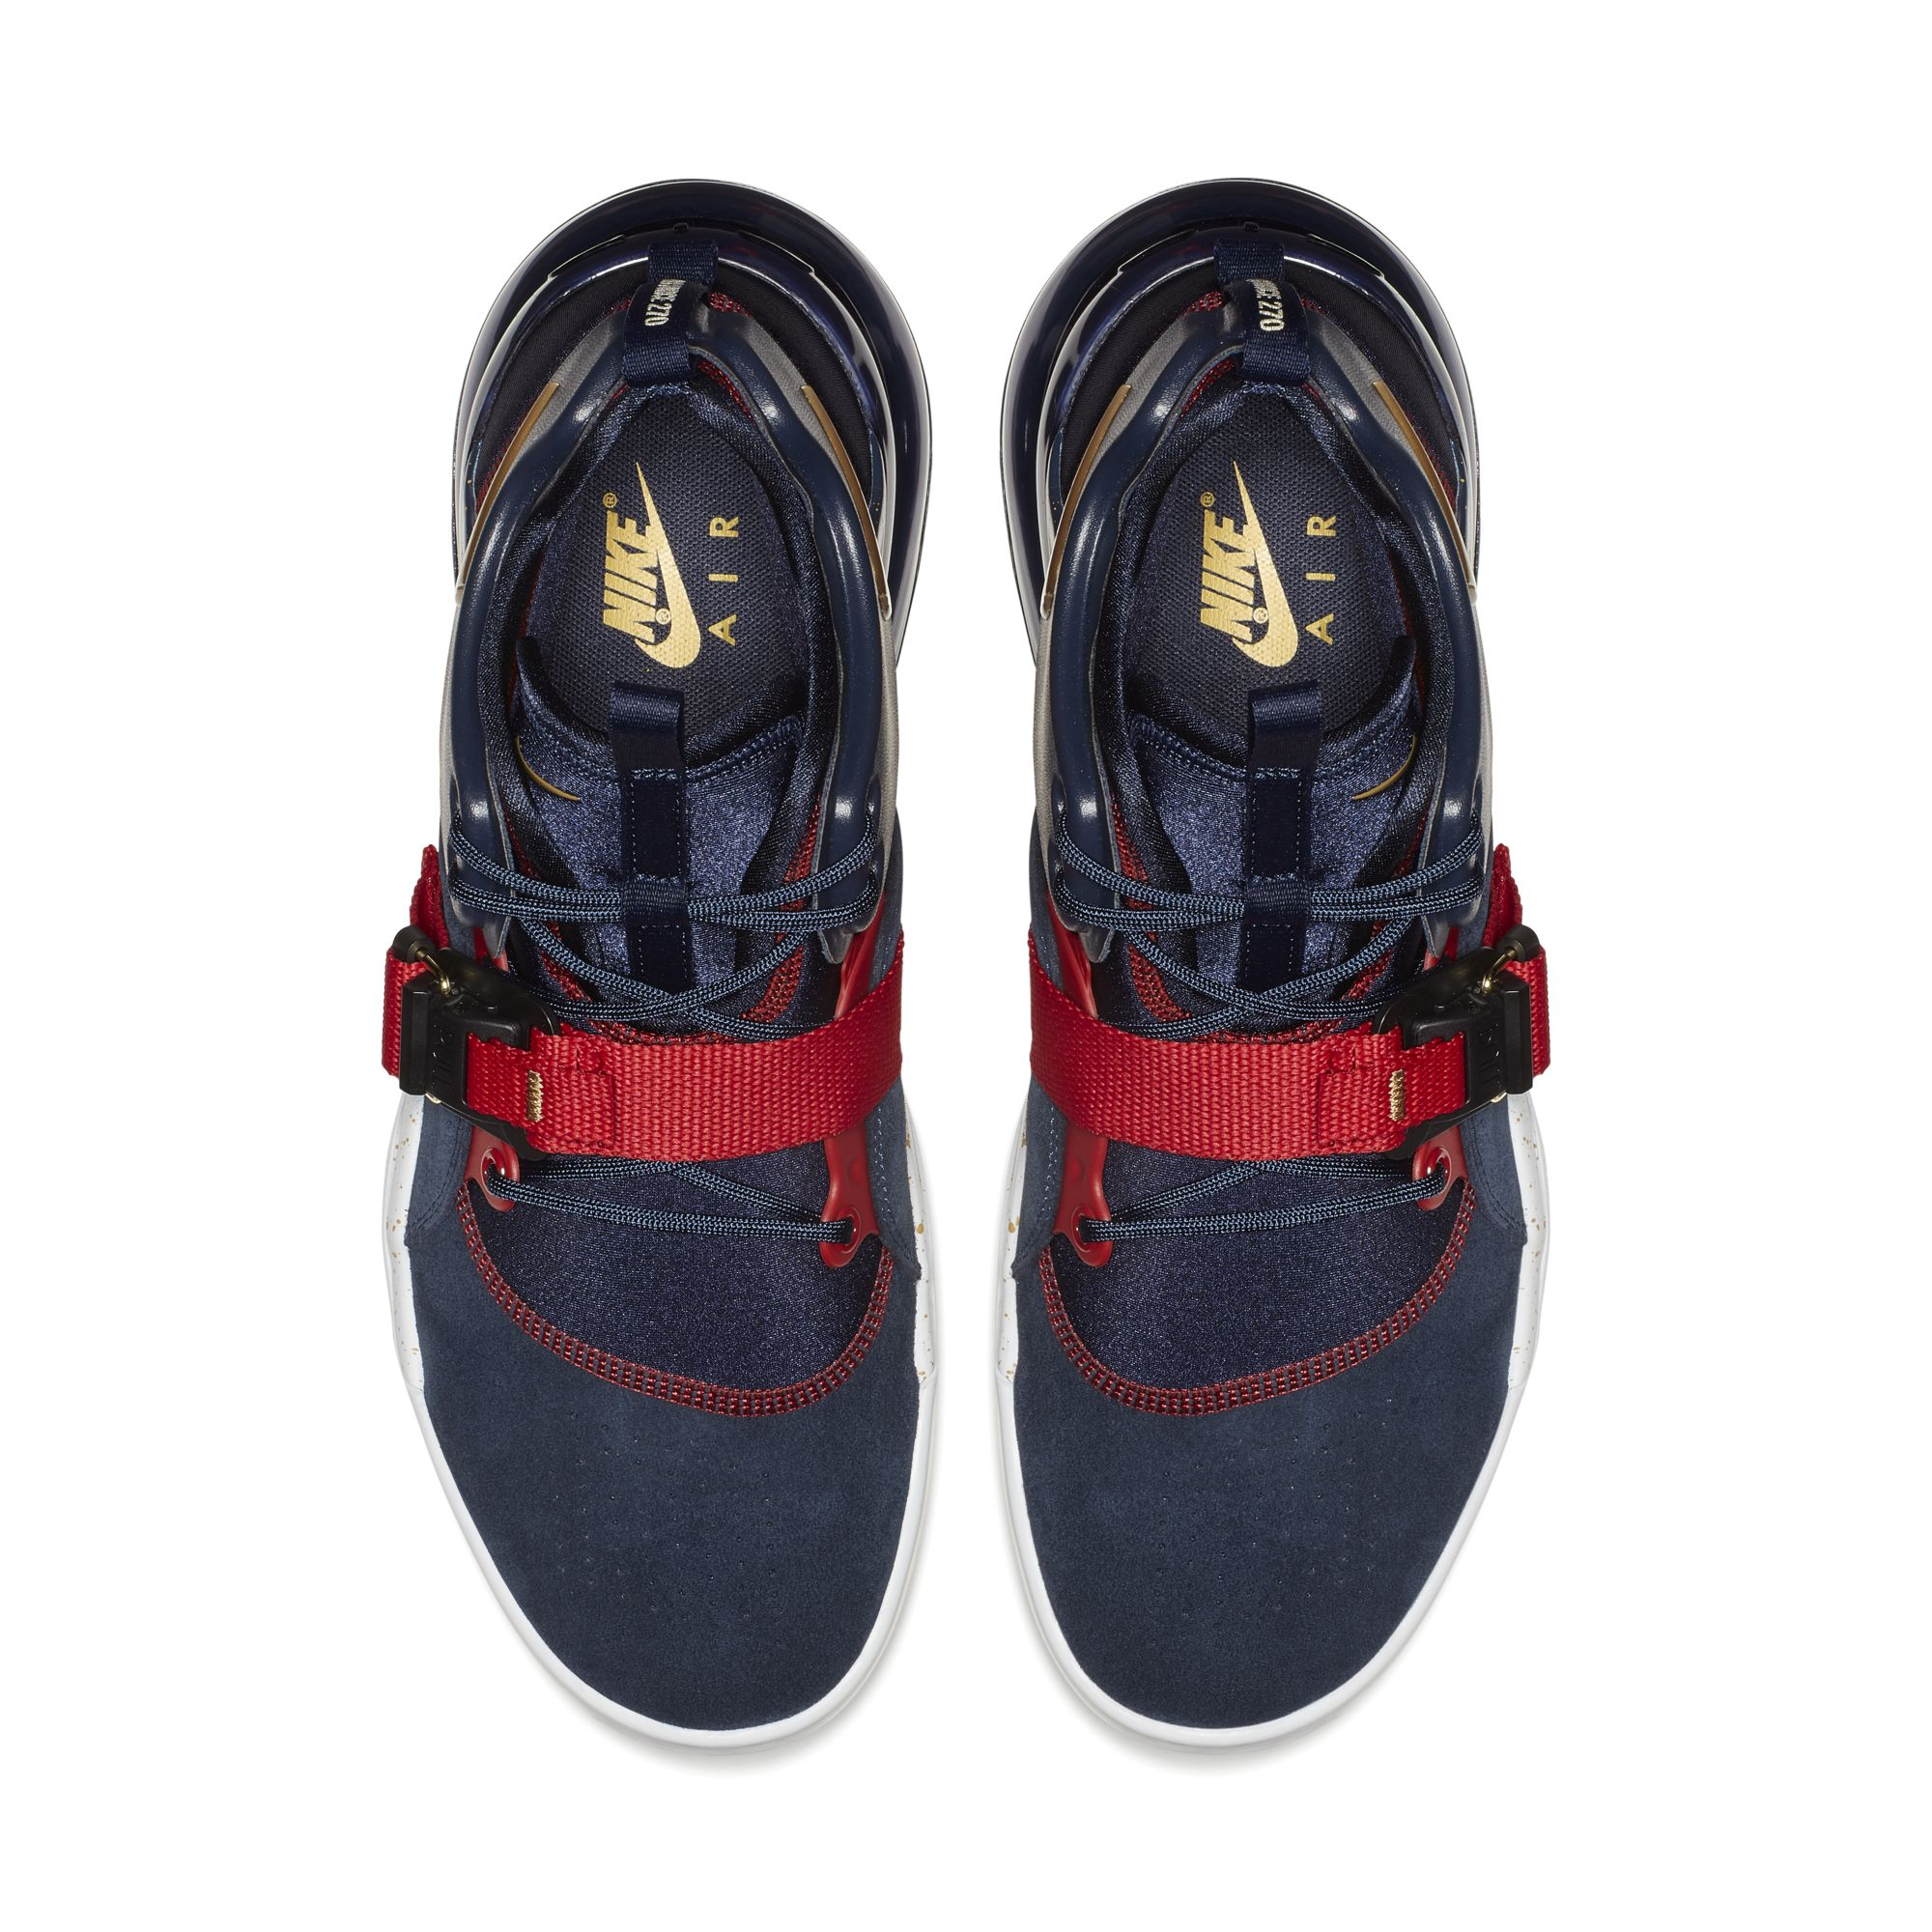 lowest price 26cd2 b40f9 NIKE AIR FORCE 270 OBSIDIAN METALLIC GOLD-GYM RED-WHITE 2